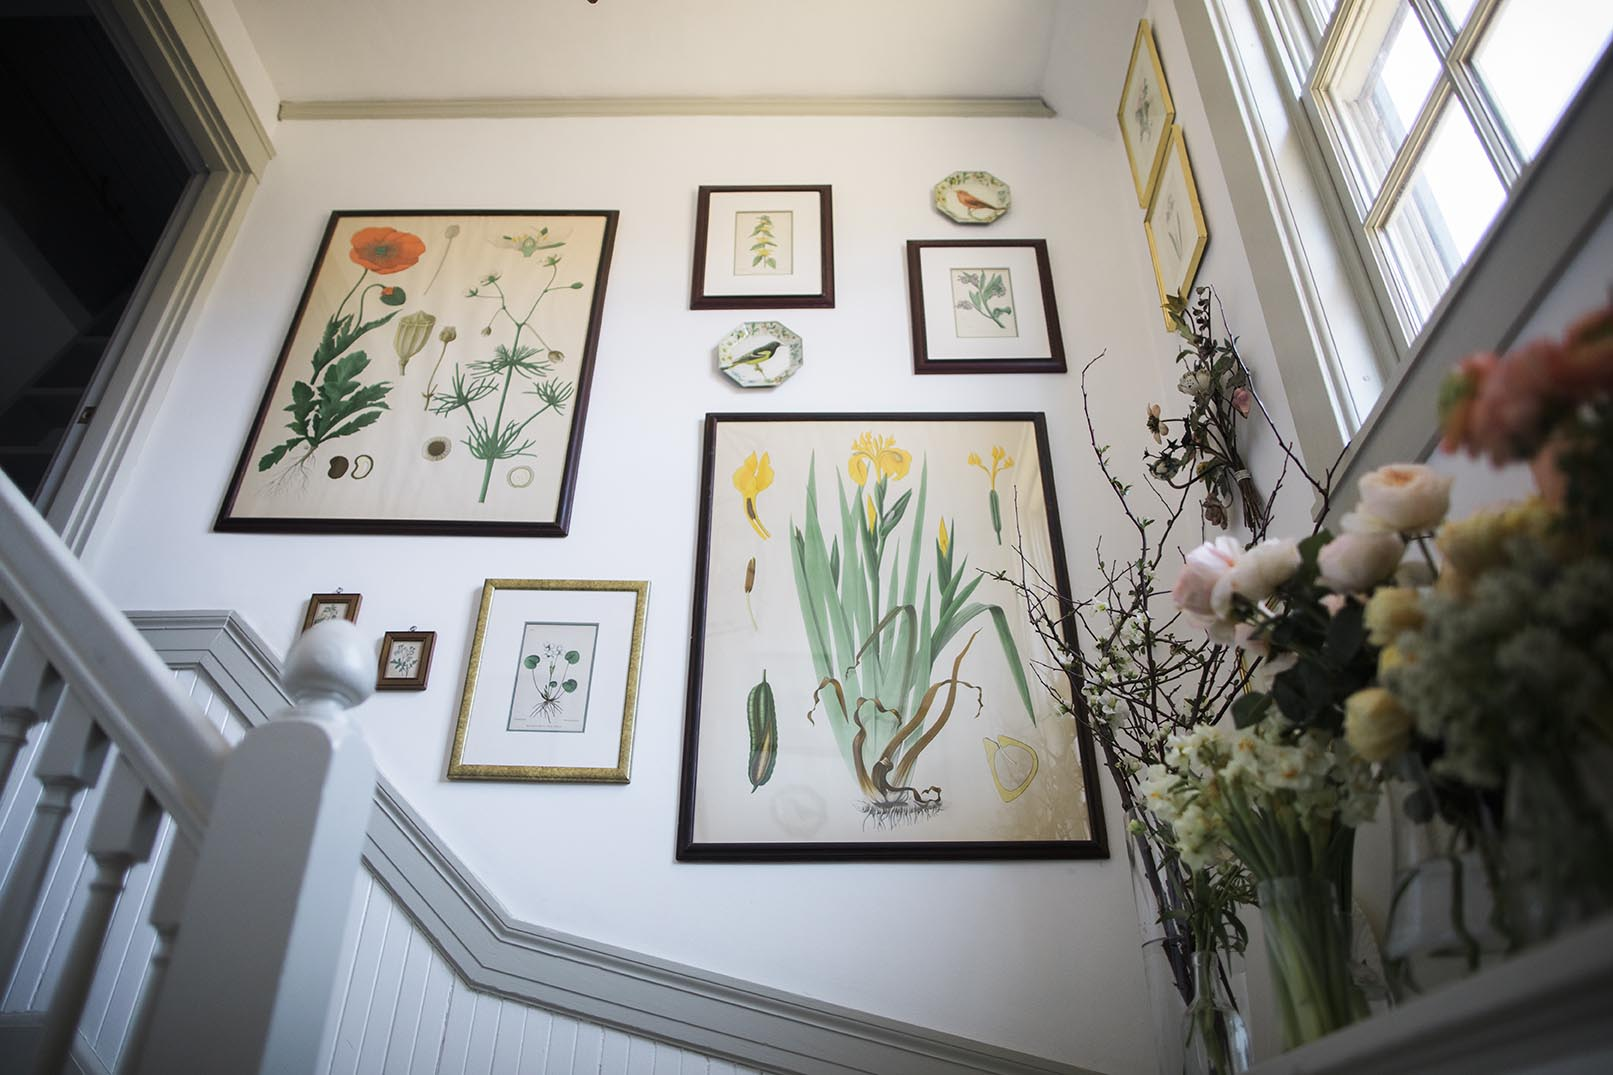 Staircase with antique pictures in frames